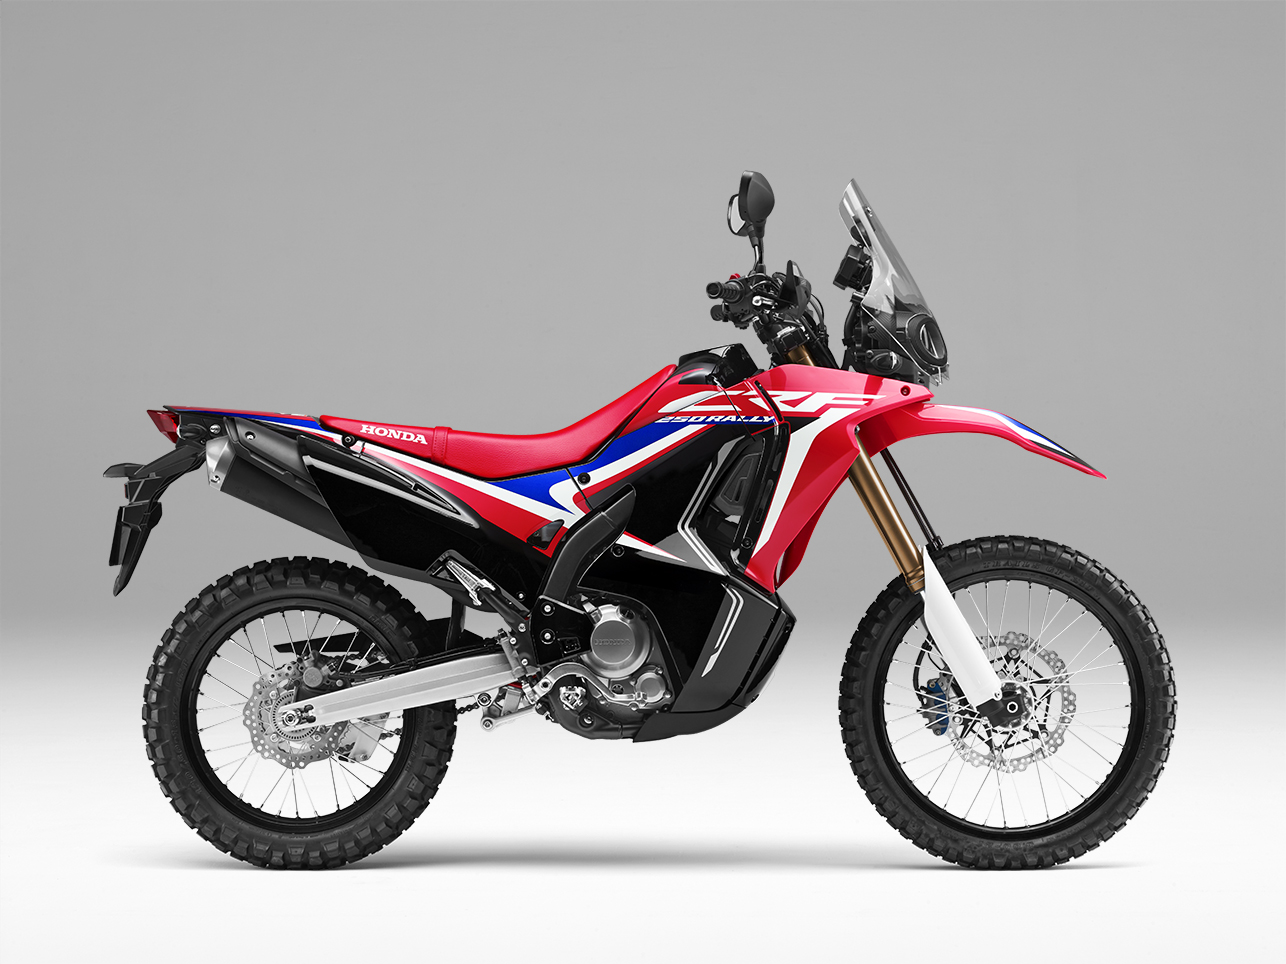 AHM_CRF250RALLY_Extreme Red